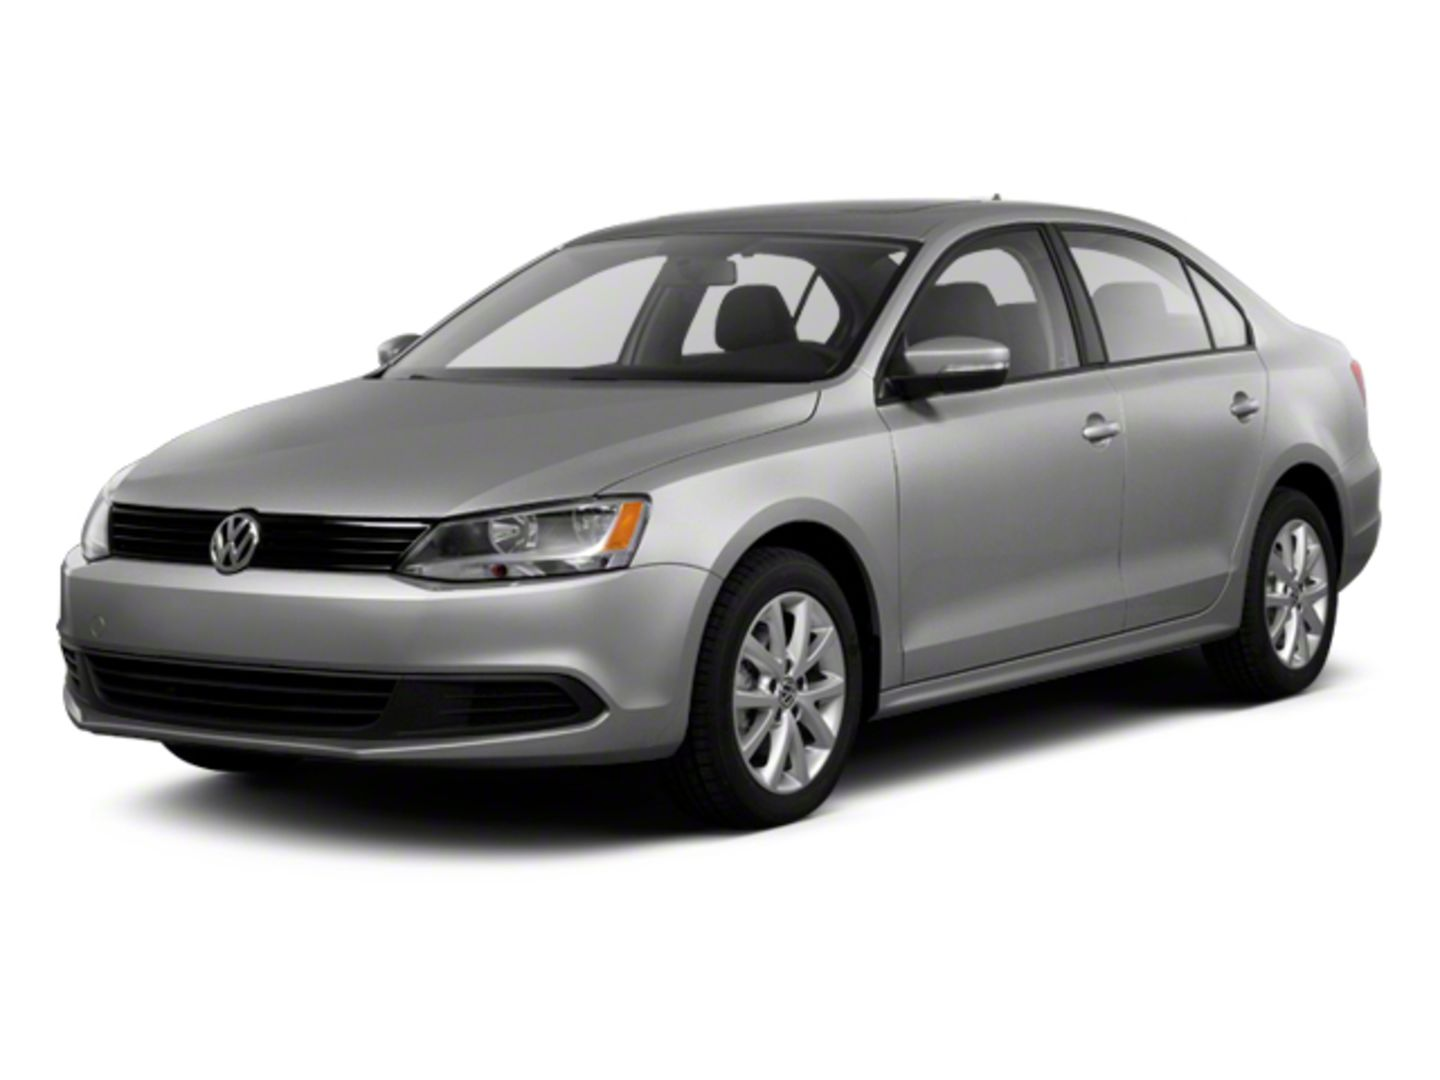 2011 Volkswagen Jetta Sedan Comfortline for sale in Leduc, Alberta